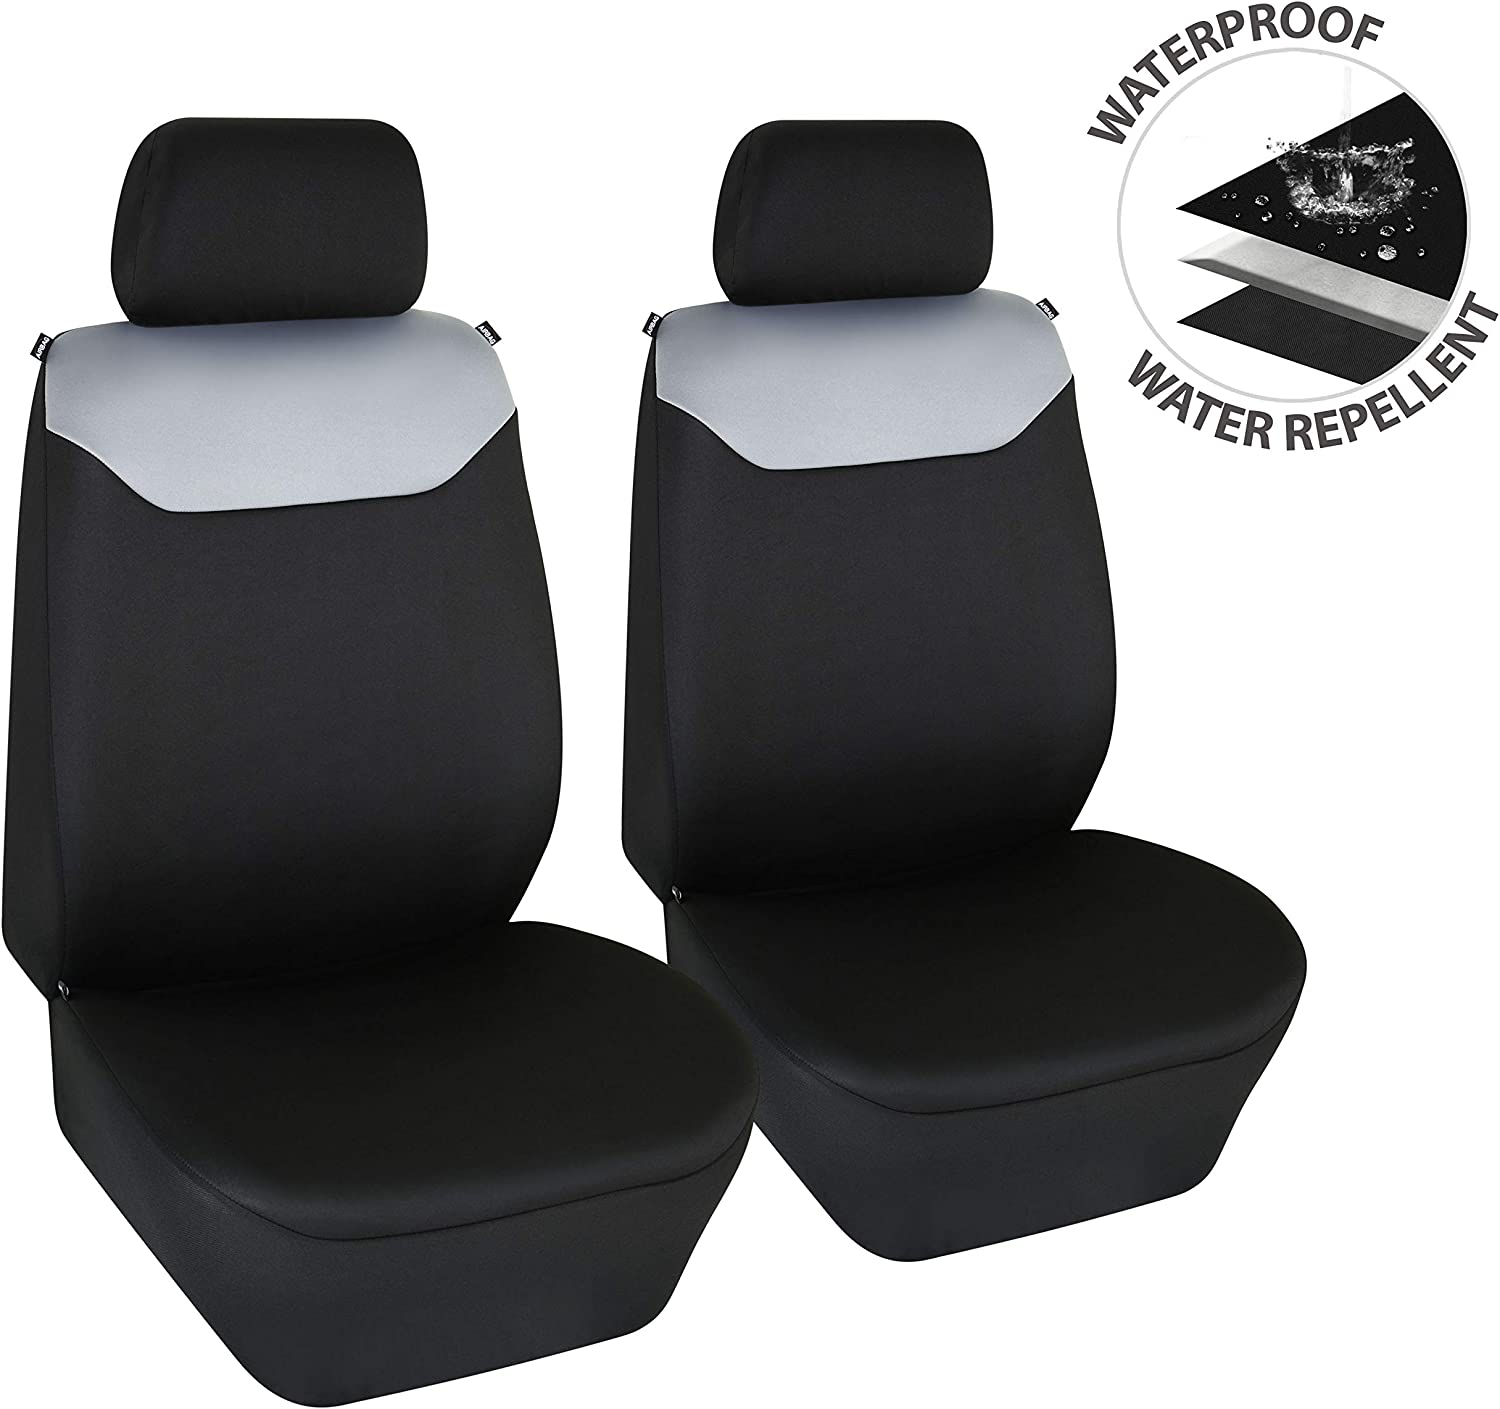 Elantrip Dual Waterproof Neoprene Front Seat Covers Car Bucket Seat Cover Universal Fit Airbag Compatible for Auto SUV Truck Van Black 2 PC